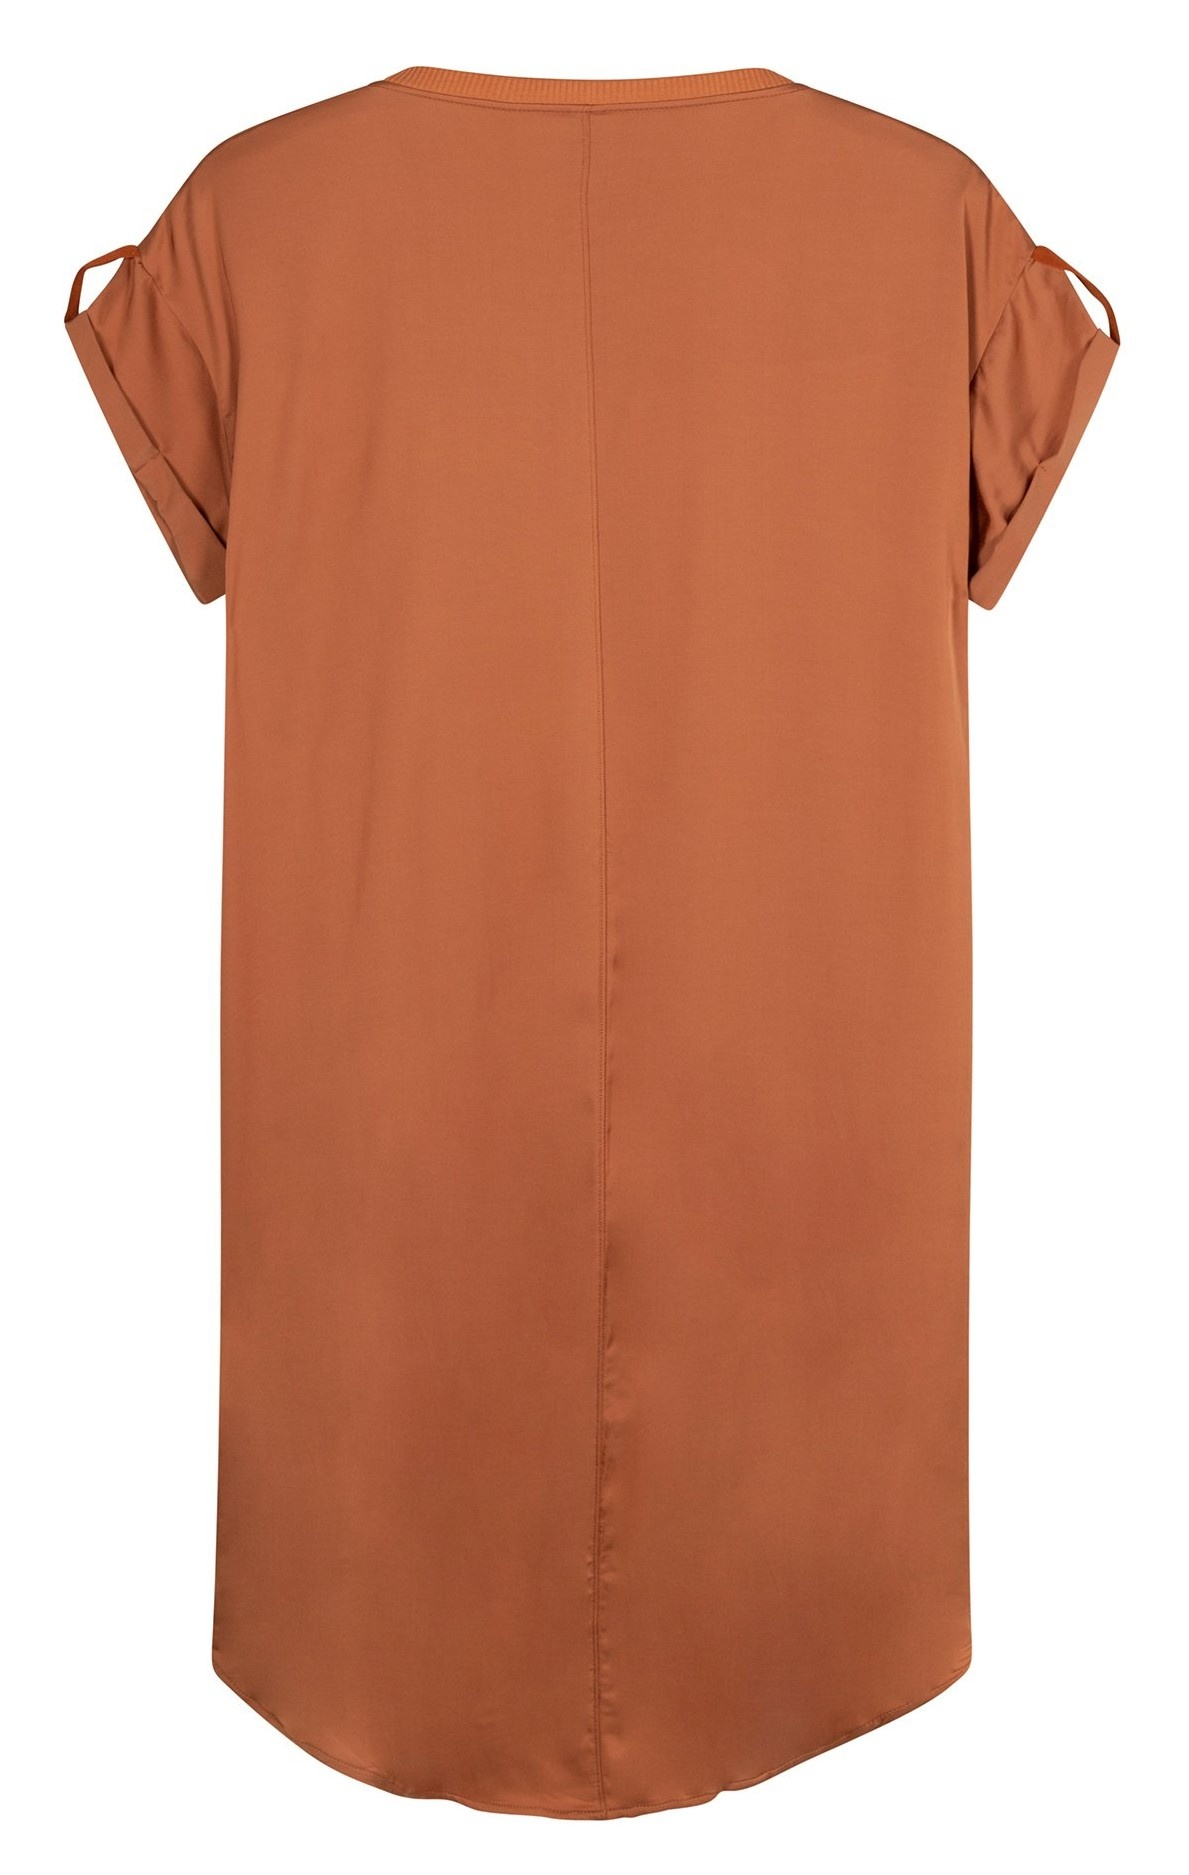 Jurk dress copper brown-4